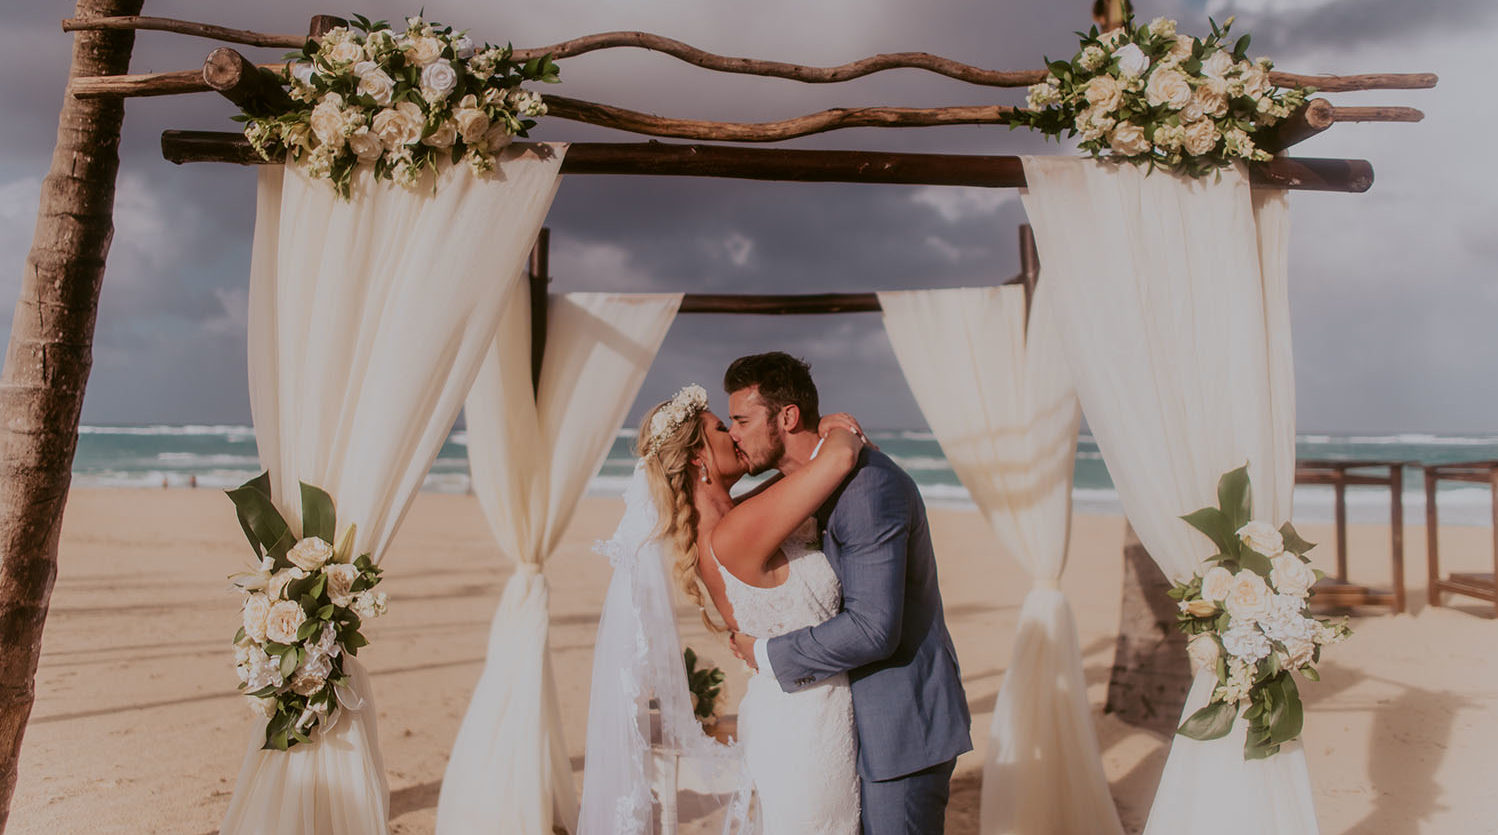 Destination wedding em Punta Cana: Fernanda e Daniel